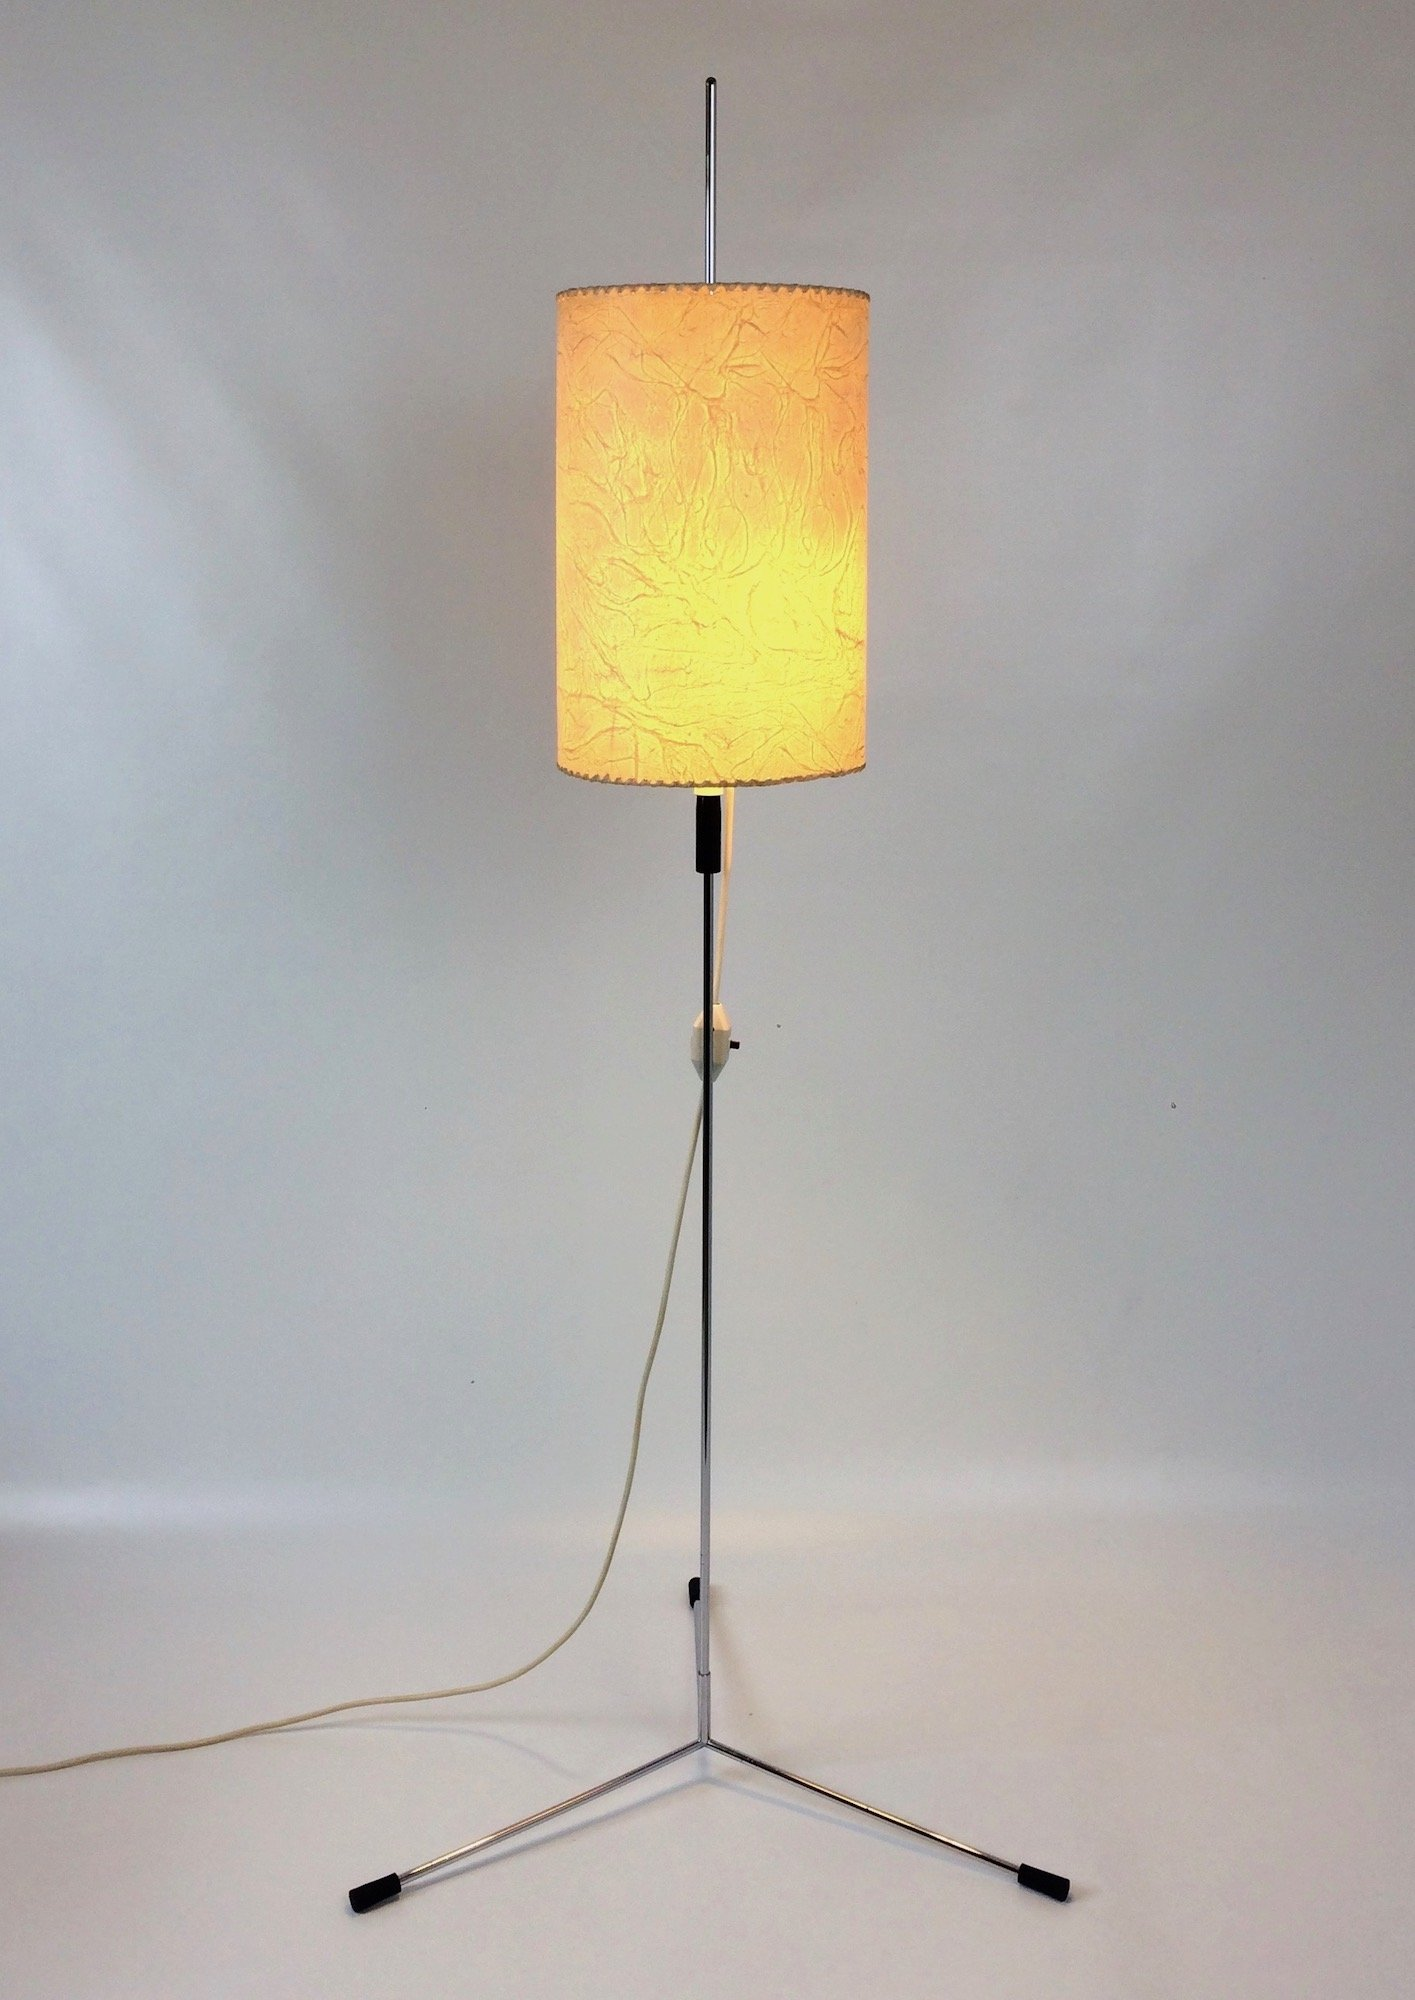 Infinitely height adjustable floor lamp by hans jrg walter josef infinitely height adjustable floor lamp by hans jrg walter josef kuntner 1960s mozeypictures Choice Image